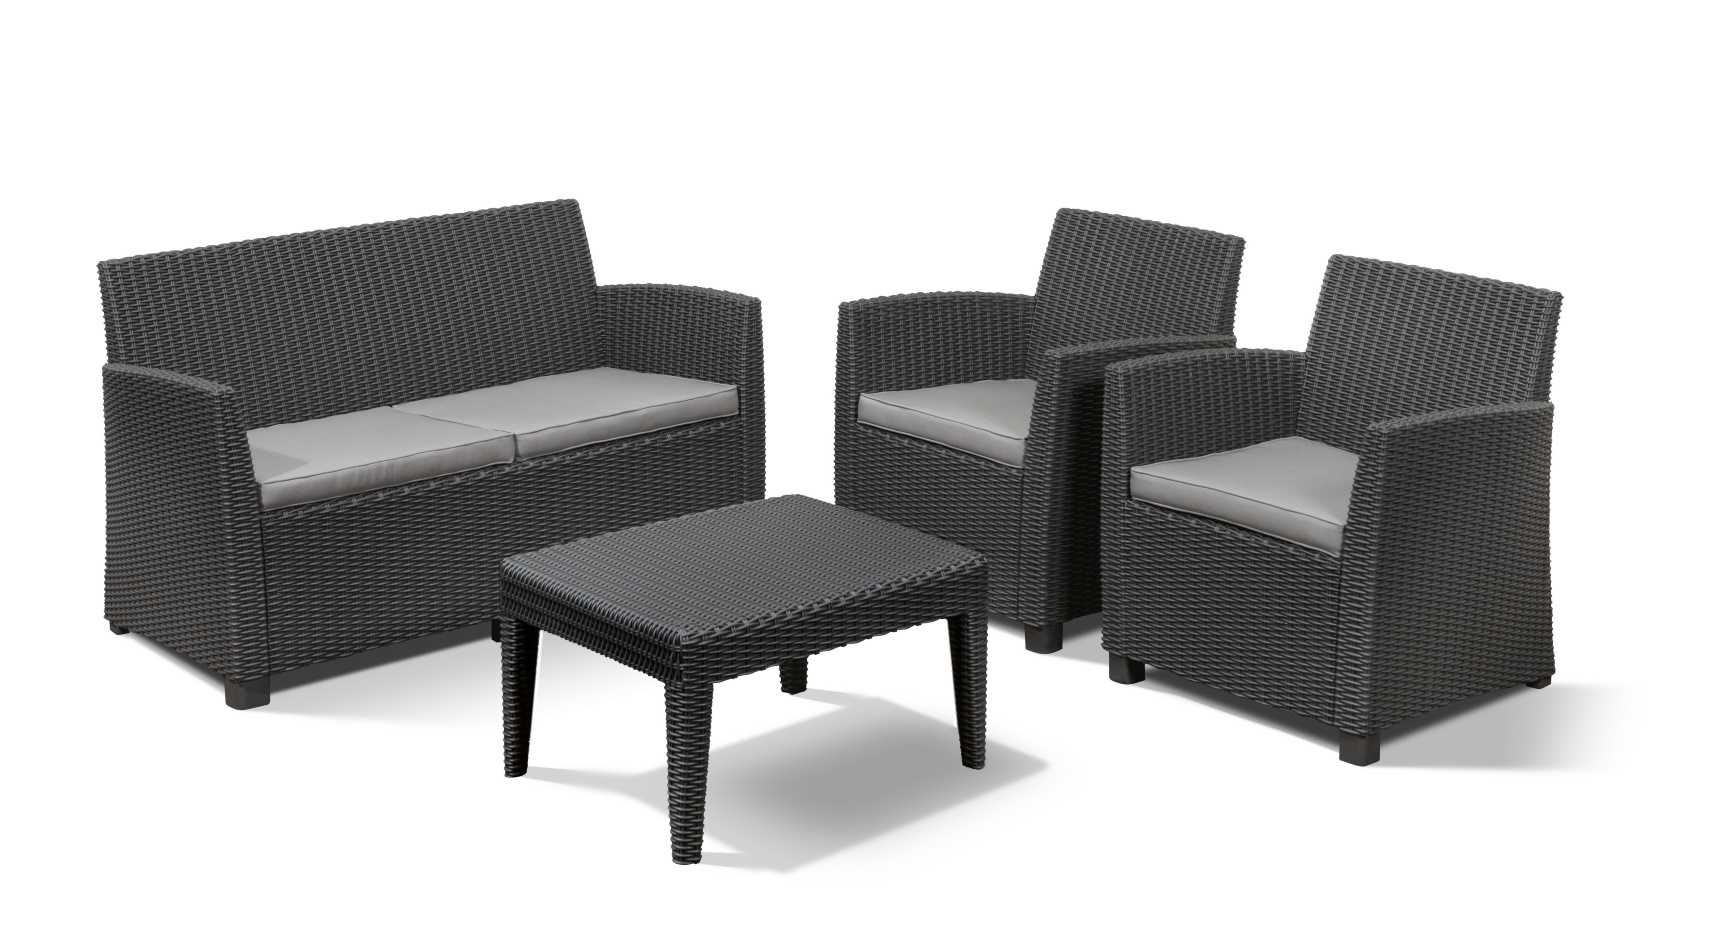 Salon De Jardin Lounge Belgique Allibert Corona Lounge Set Graphite Allibert